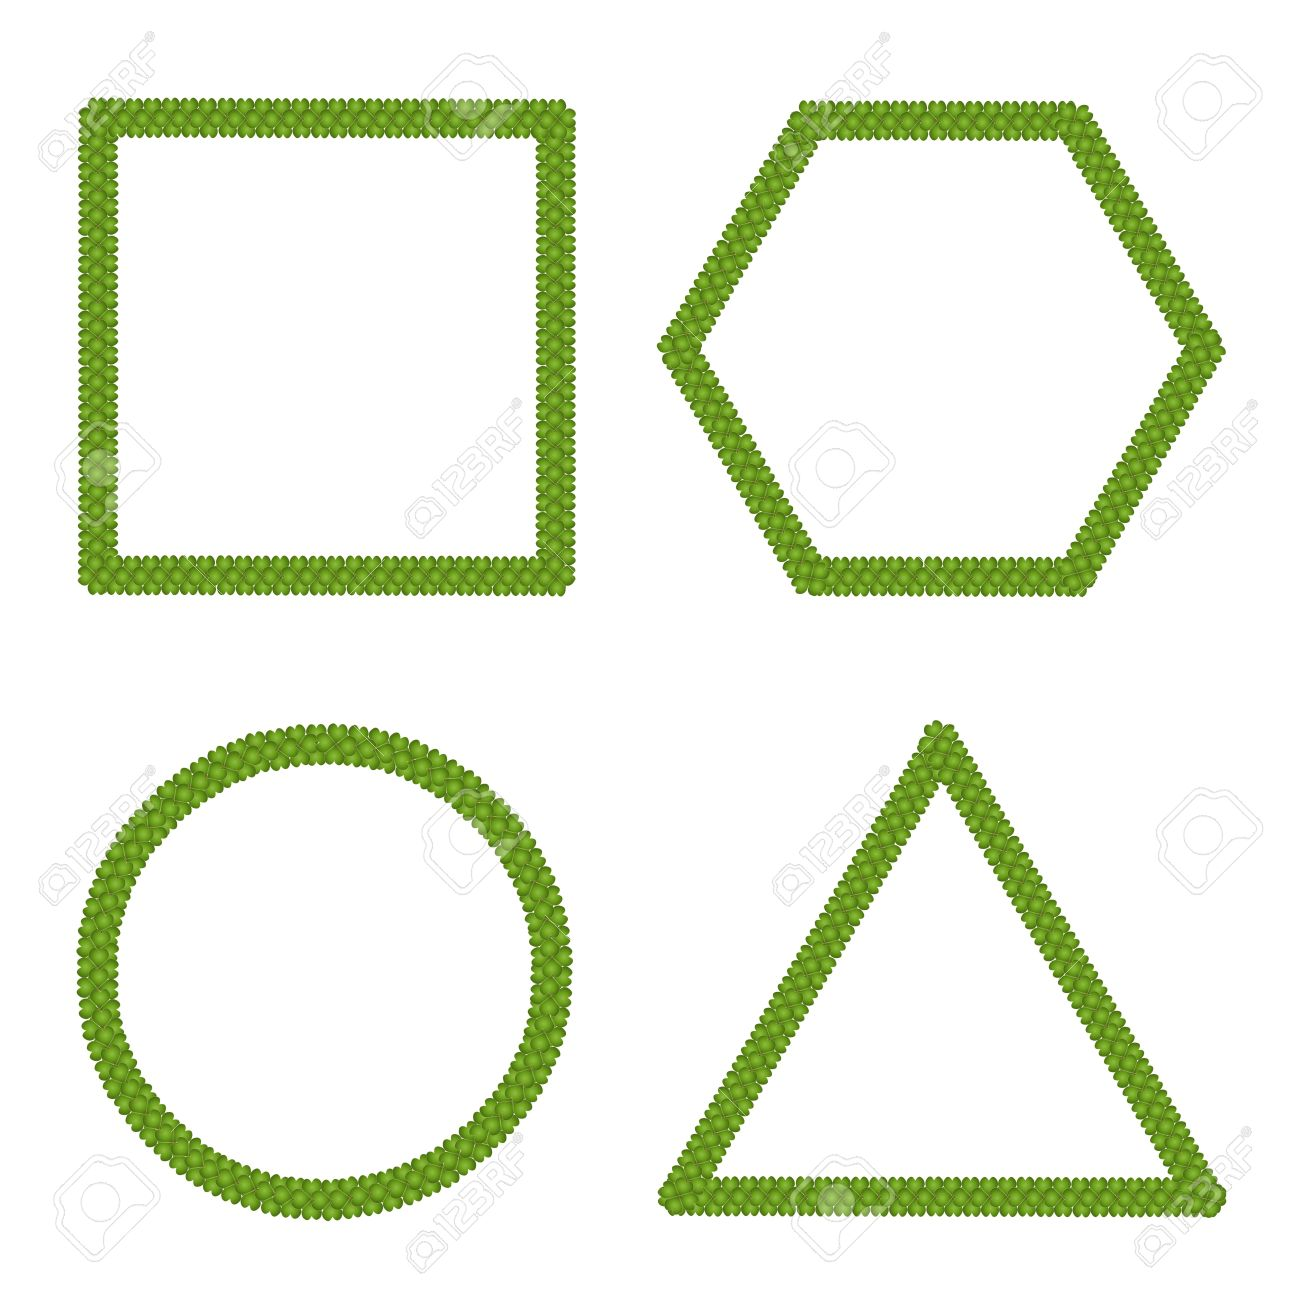 Ecology Concept of Fresh Green Four Leaf Clover Forming Square, Circle, Triangle and Hexagon Isolated on White Background Stock Photo - 17725965